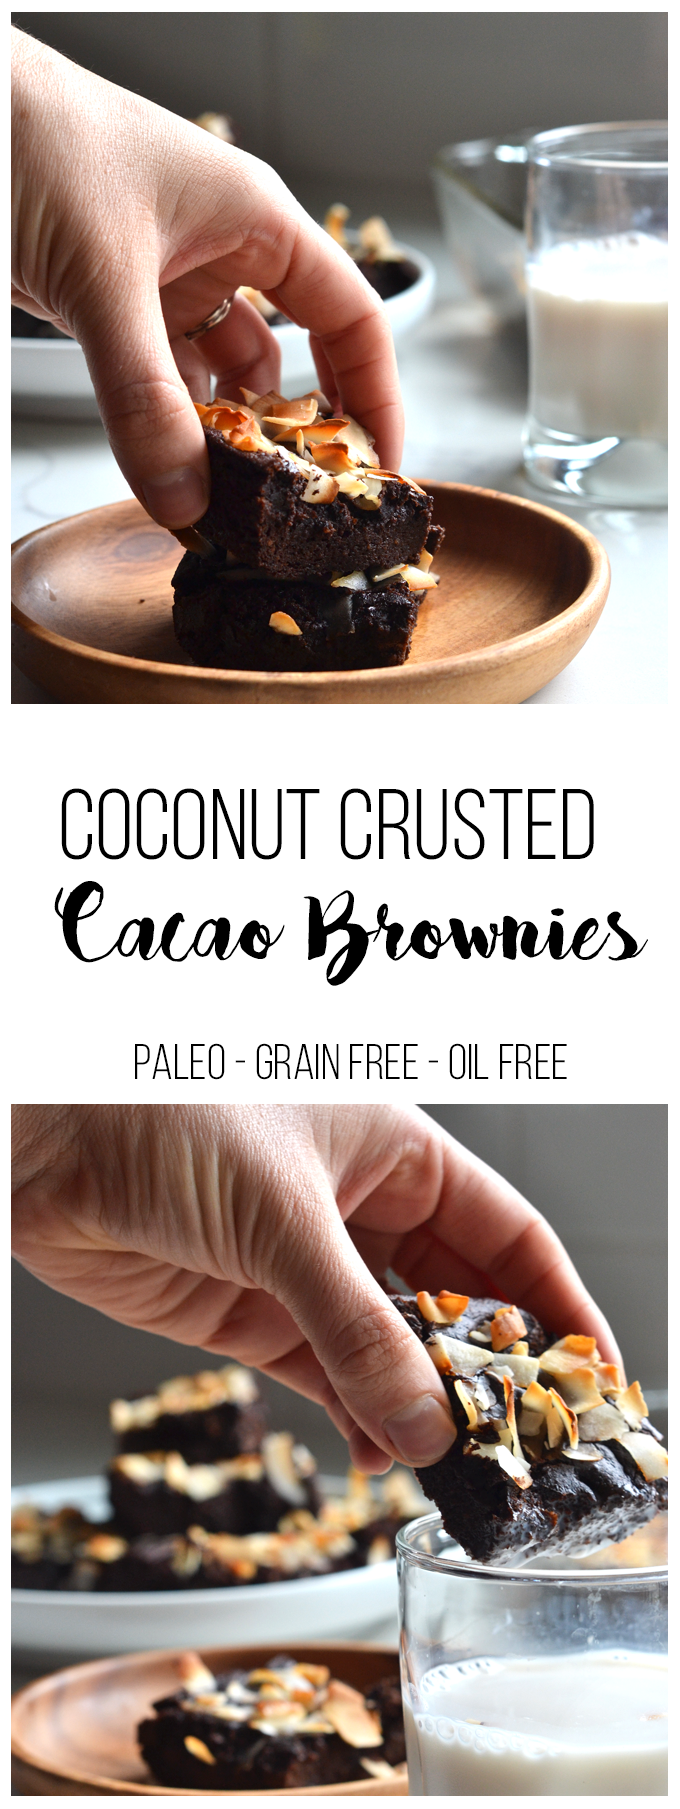 These Coconut Crusted Cacao Brownies are grain free and oil free! The healthy fat comes from avocado and they are sweetened with maple syrup!